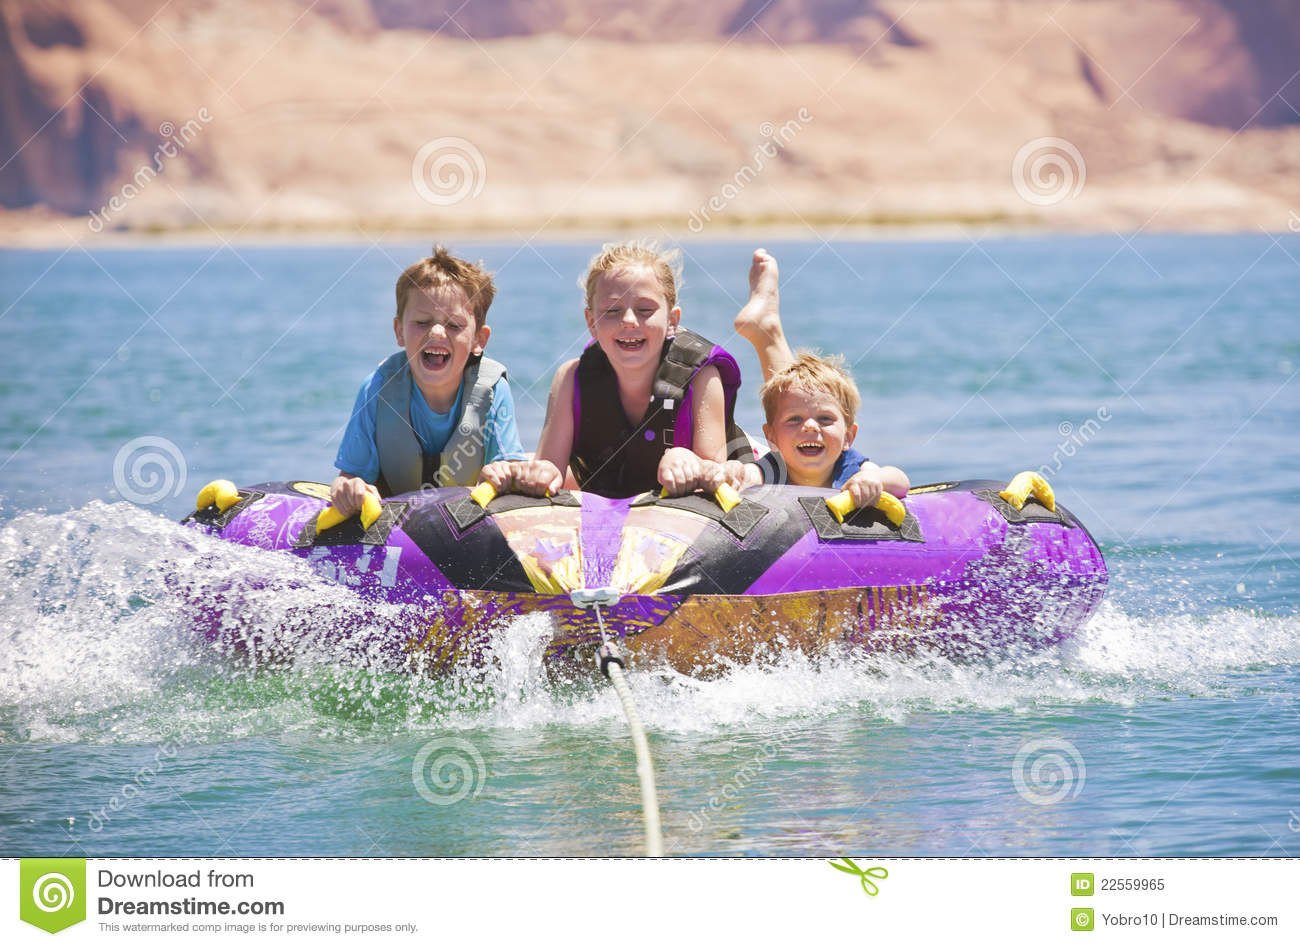 Watersports Fun - Kids Tubing